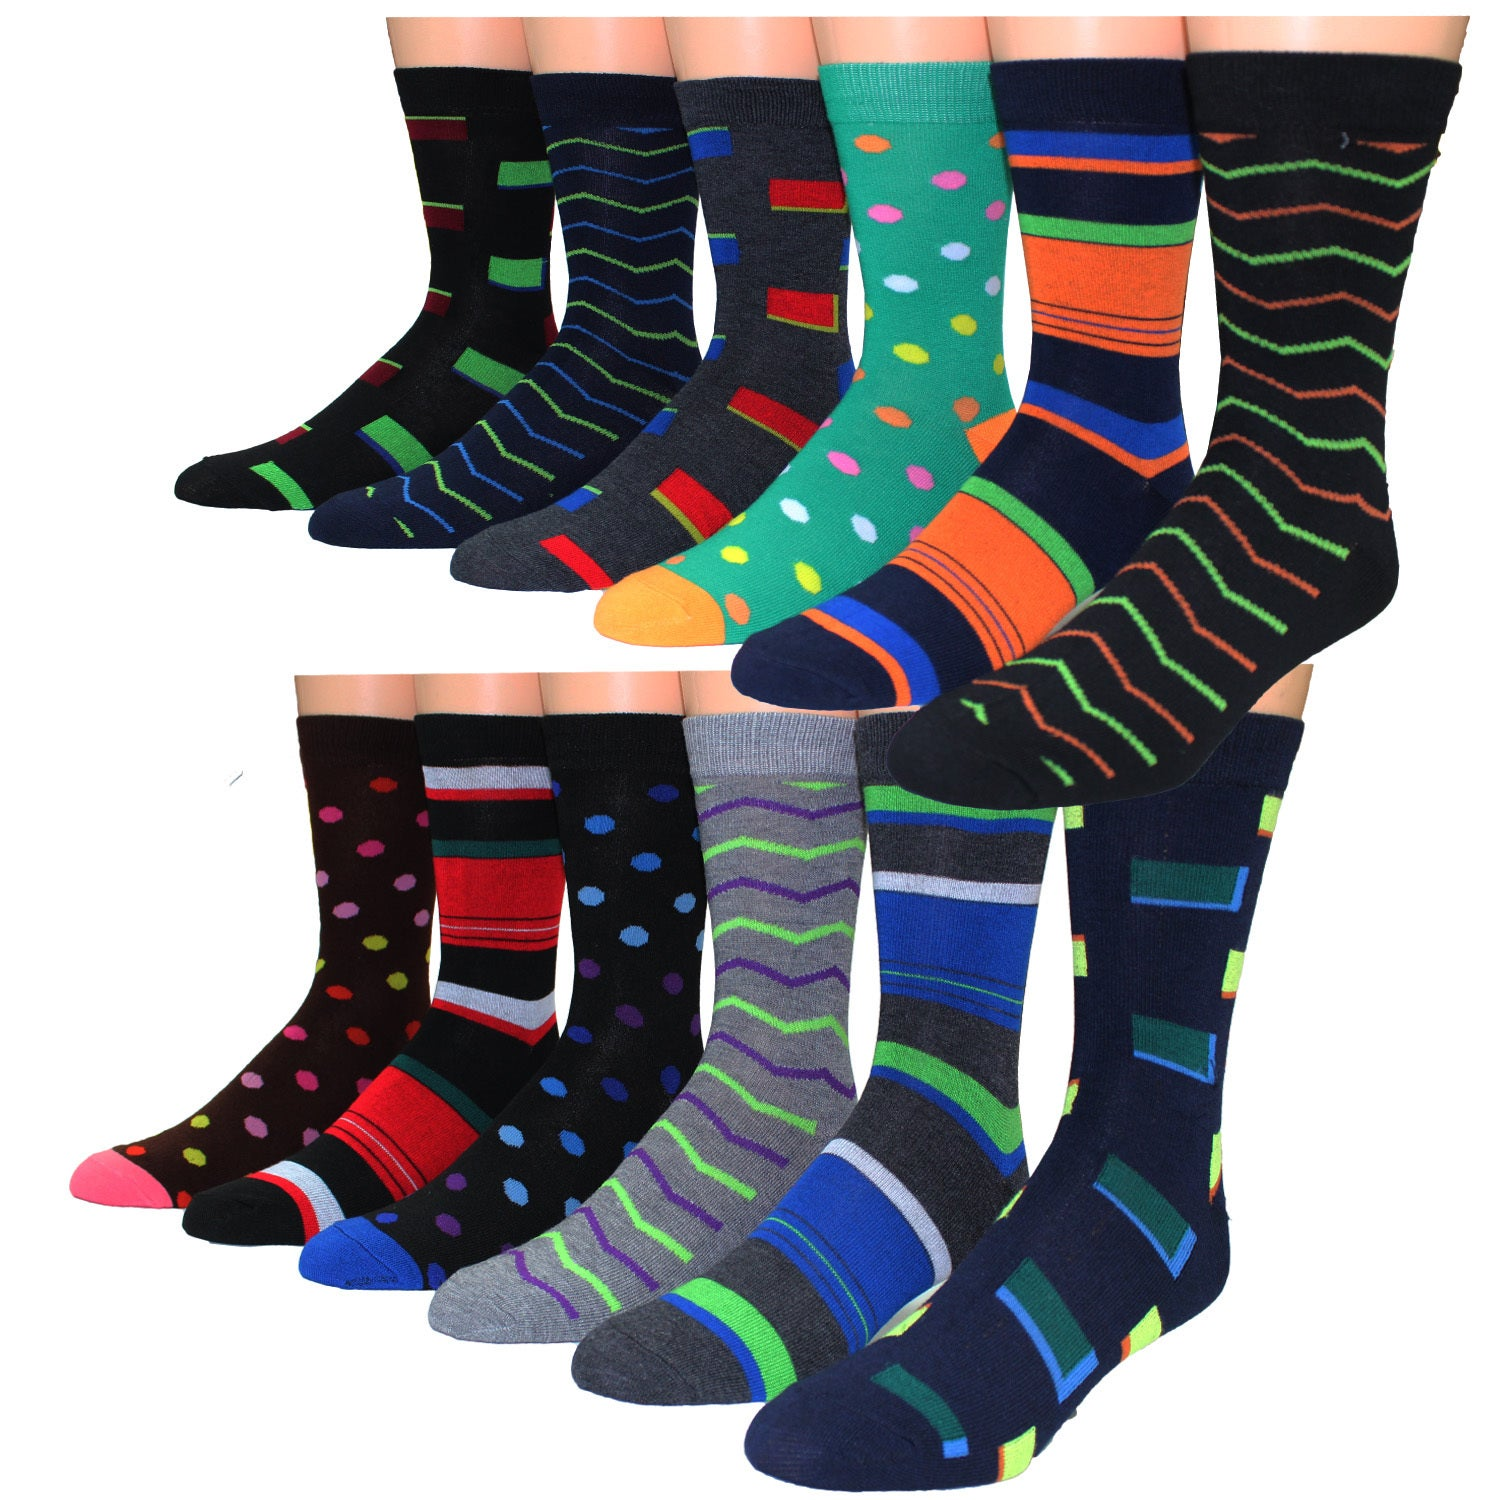 Frenchic Men s Multicolor Cotton blend Printed Casual Dress Socks